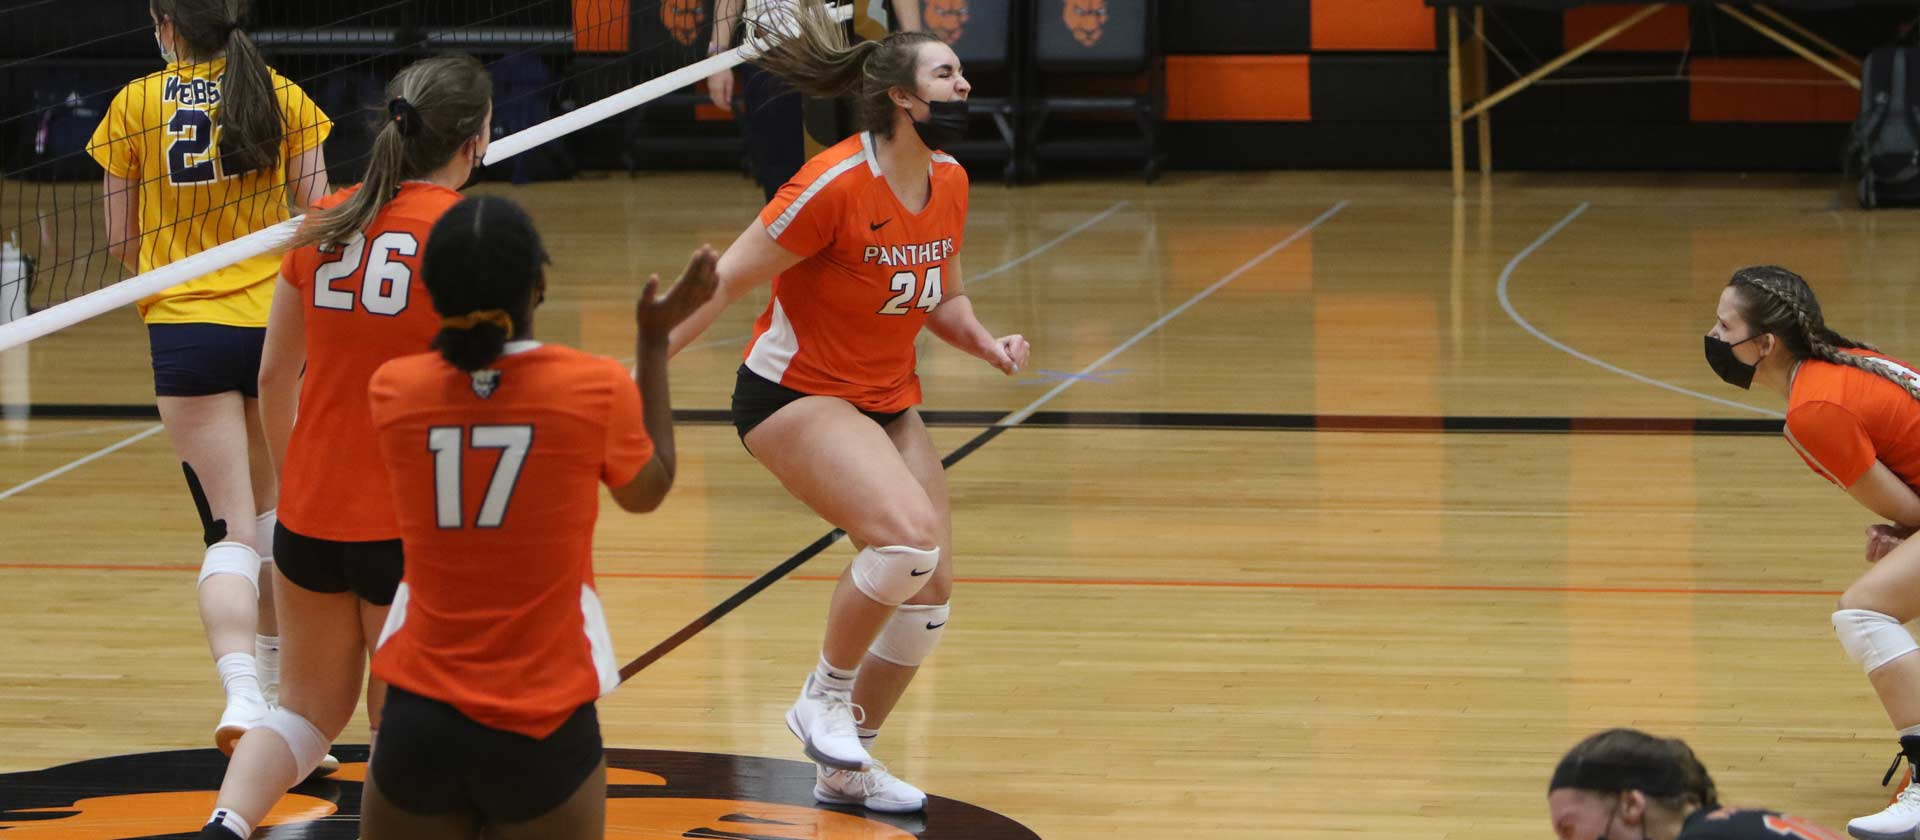 No. 16 women's volleyball downed by No. 15 Webster